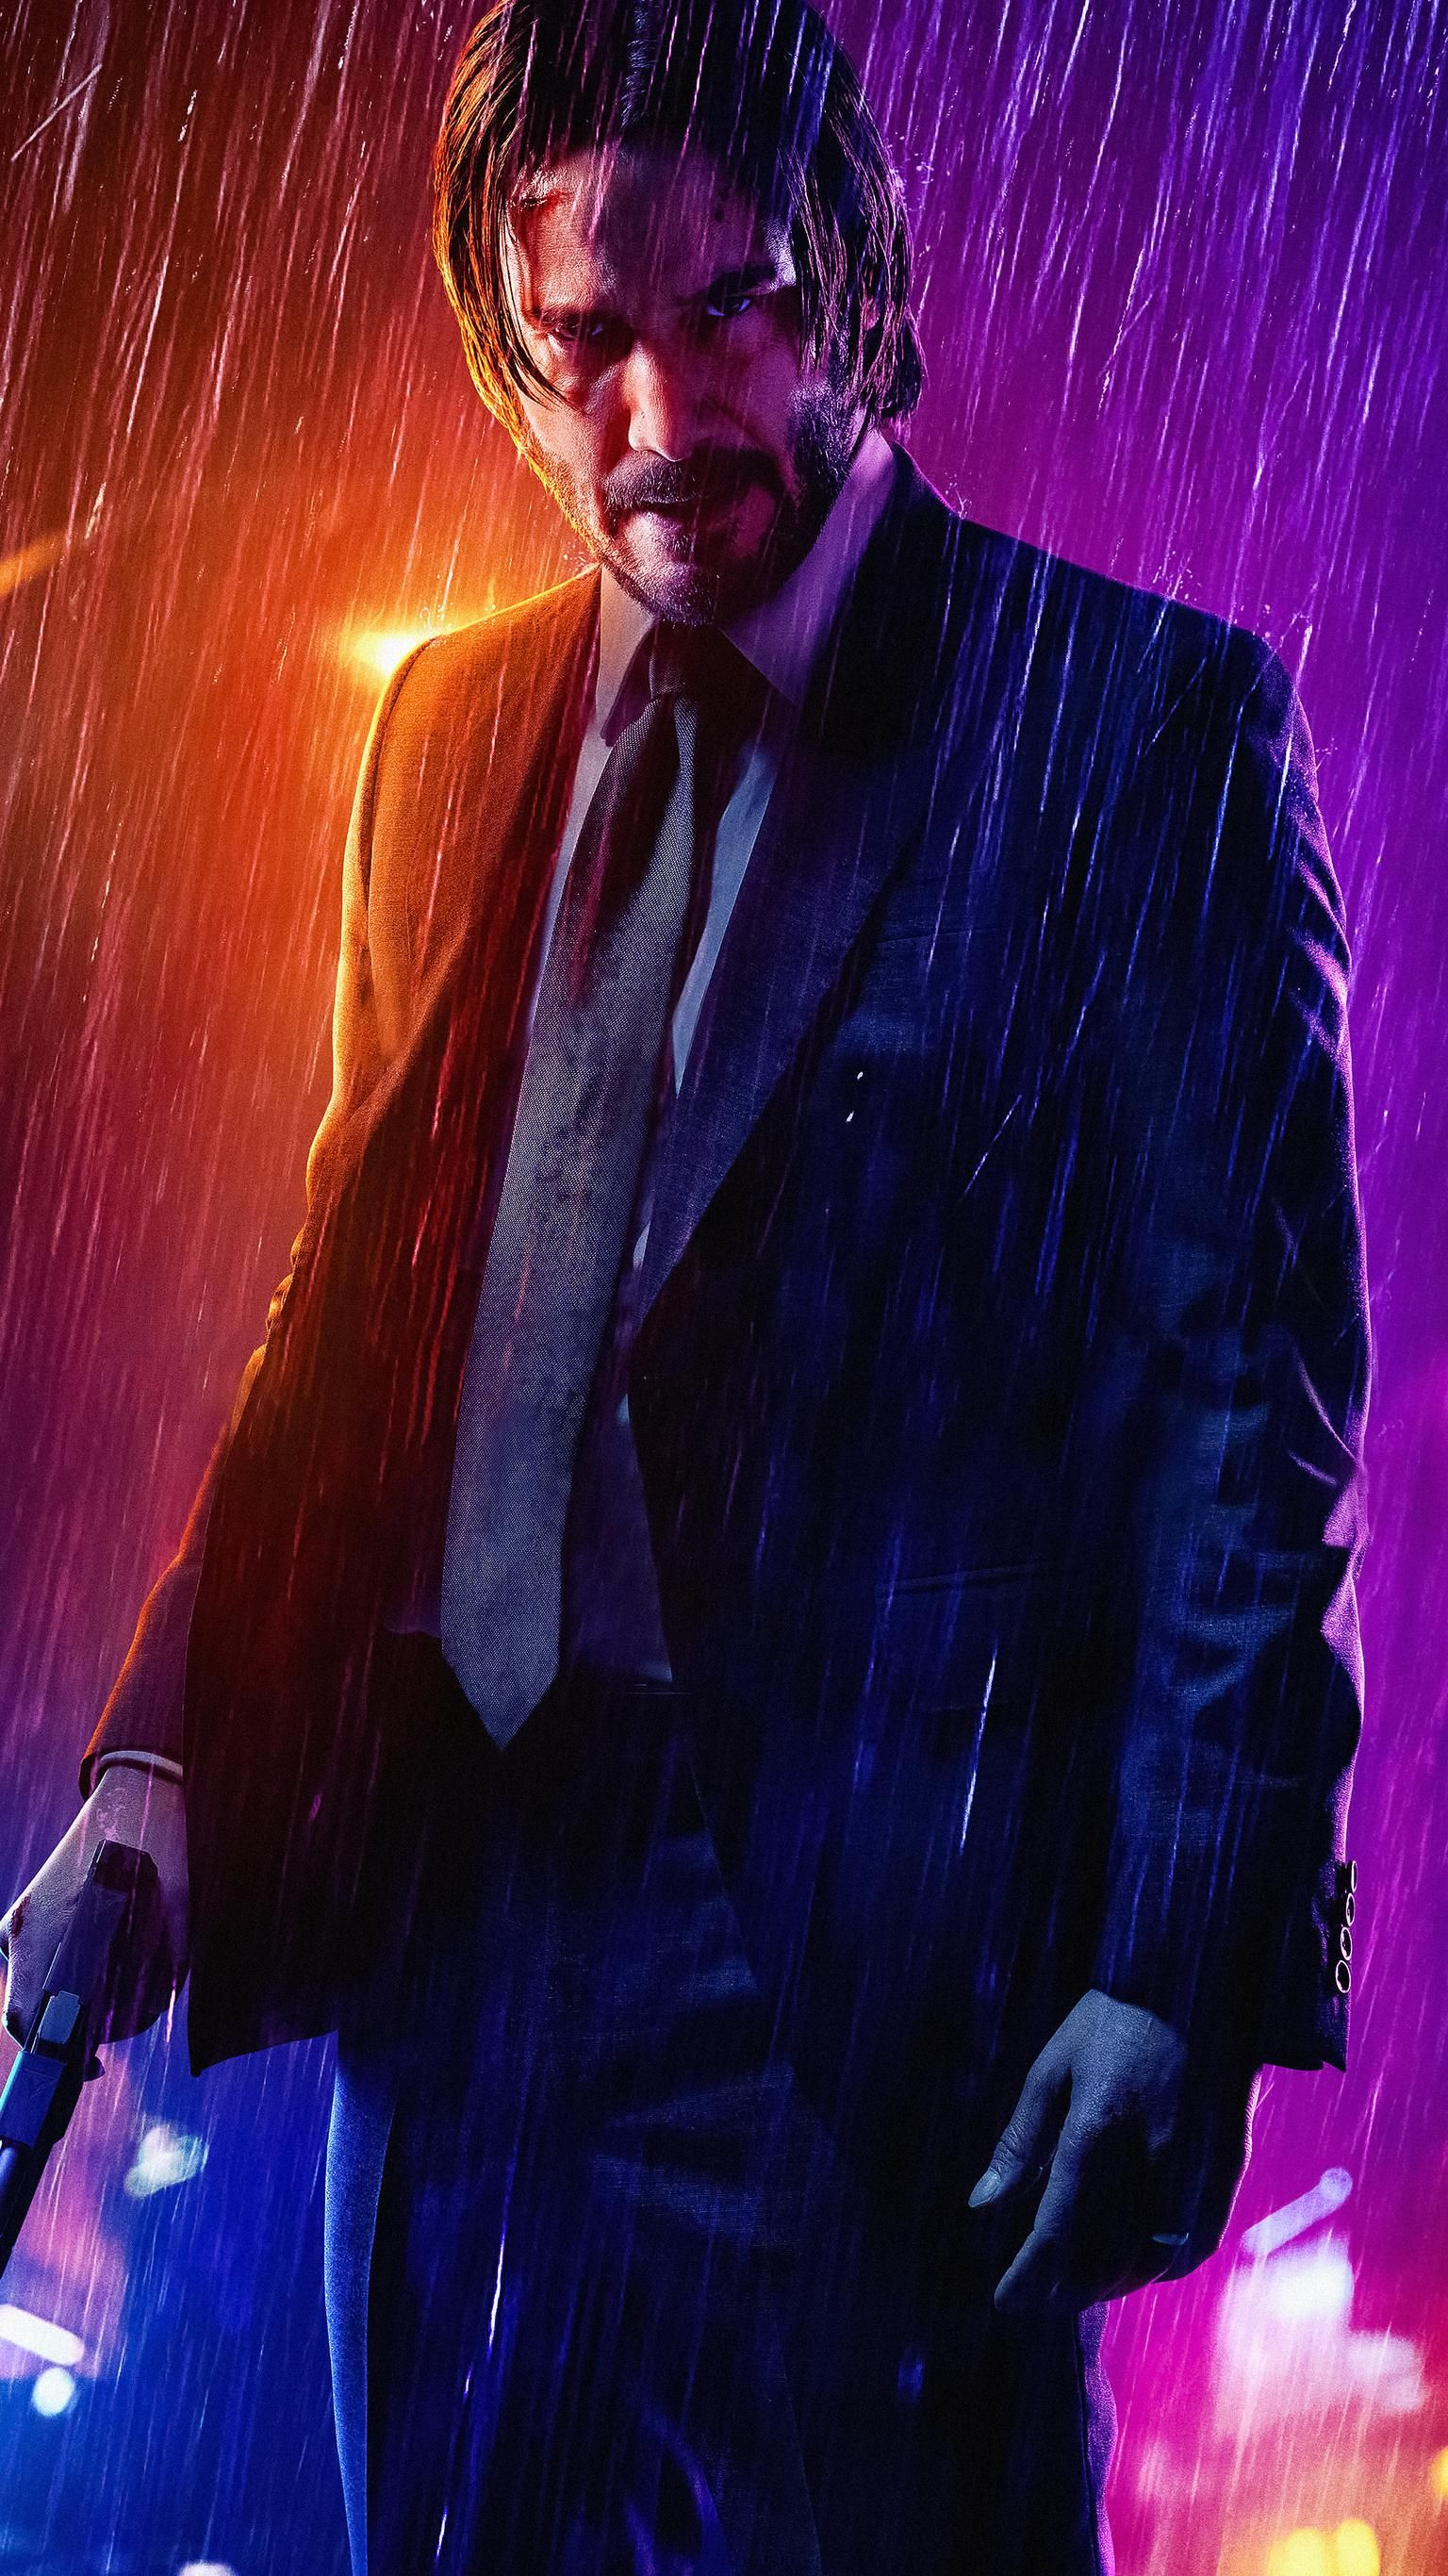 John Wick Chapter 3 Parabellum 2019 Phone Wallpaper Moviemania John Wick Movie John Wick Hd Keanu Reeves John Wick